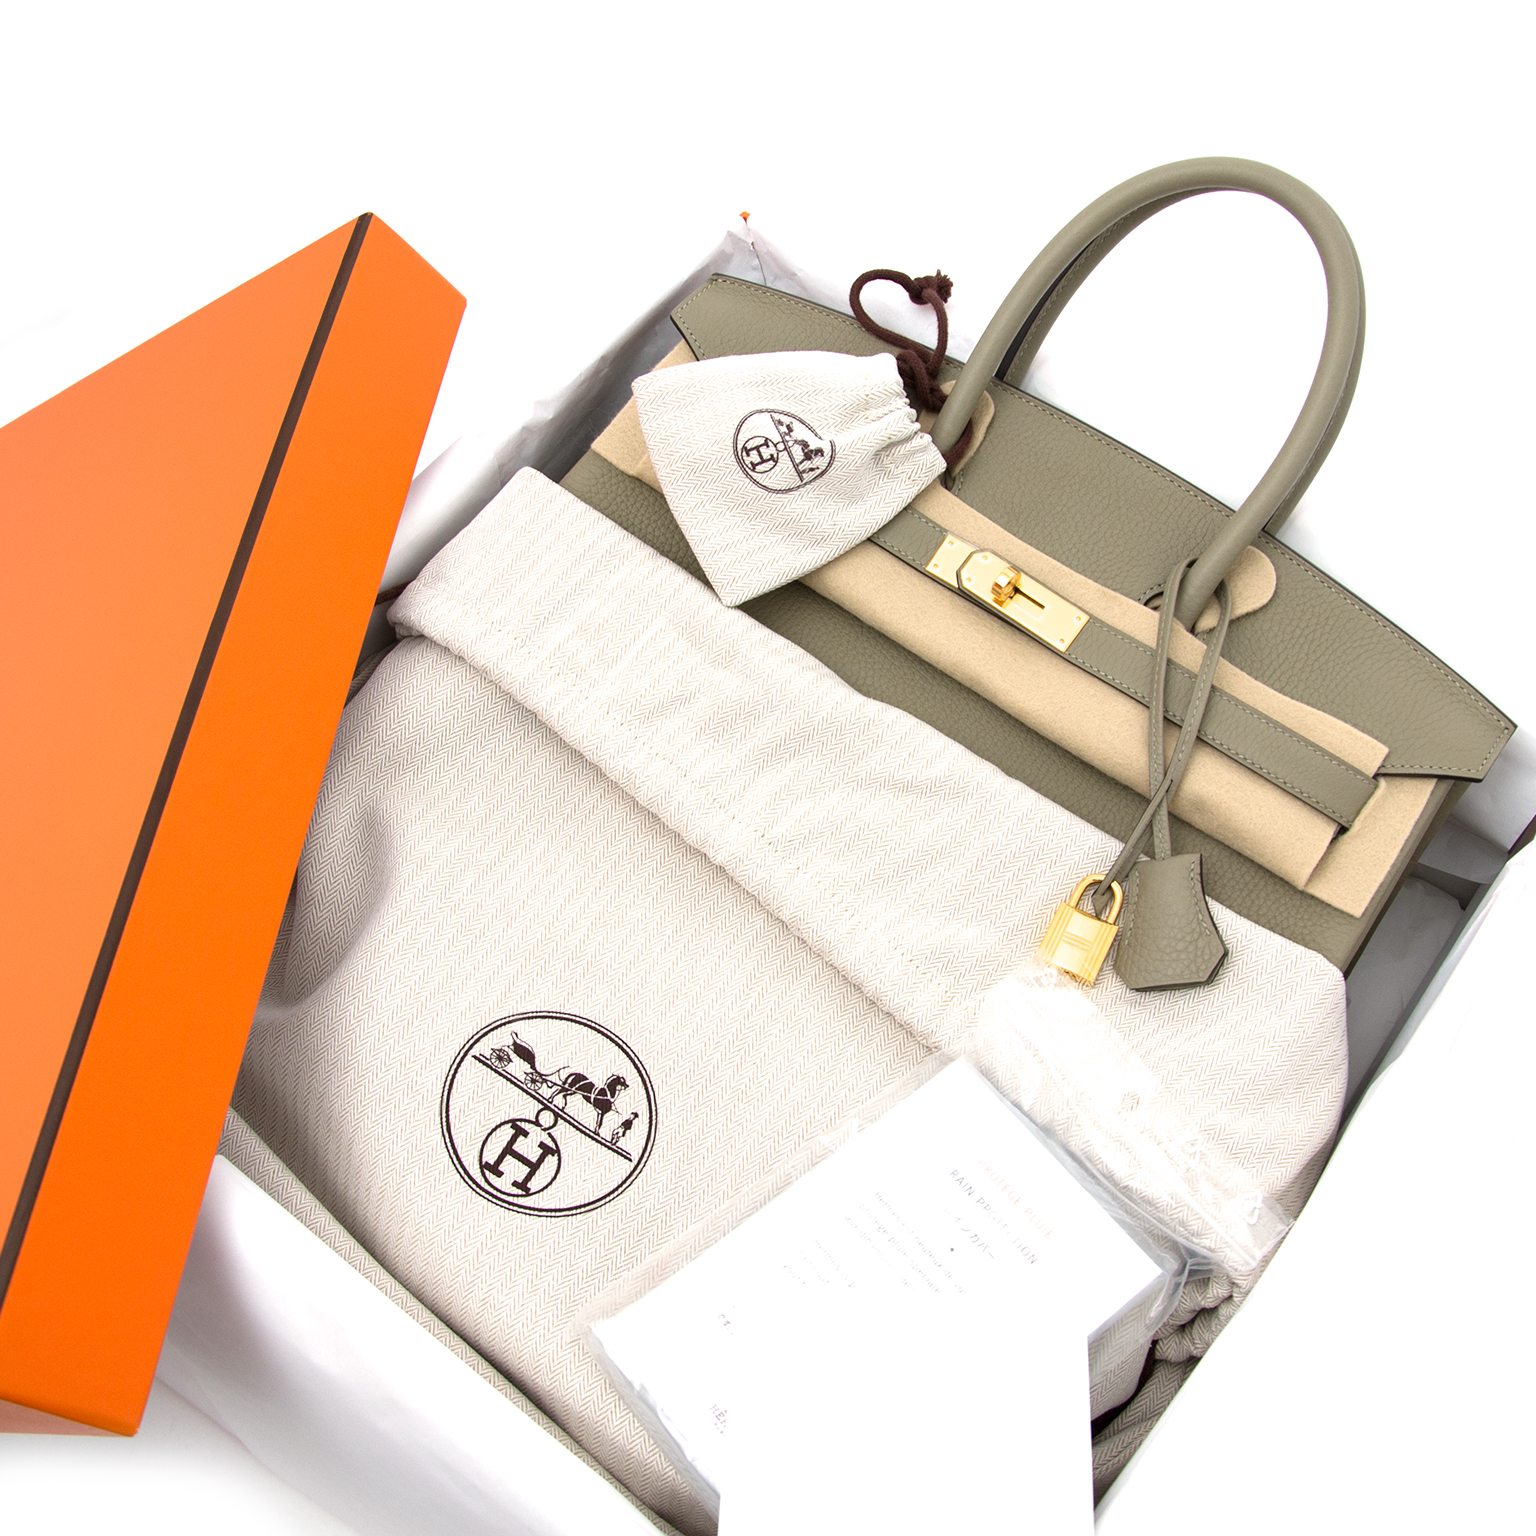 Buy and sell your hermes birkin 35 taurillon clemence sauge at labellov.com